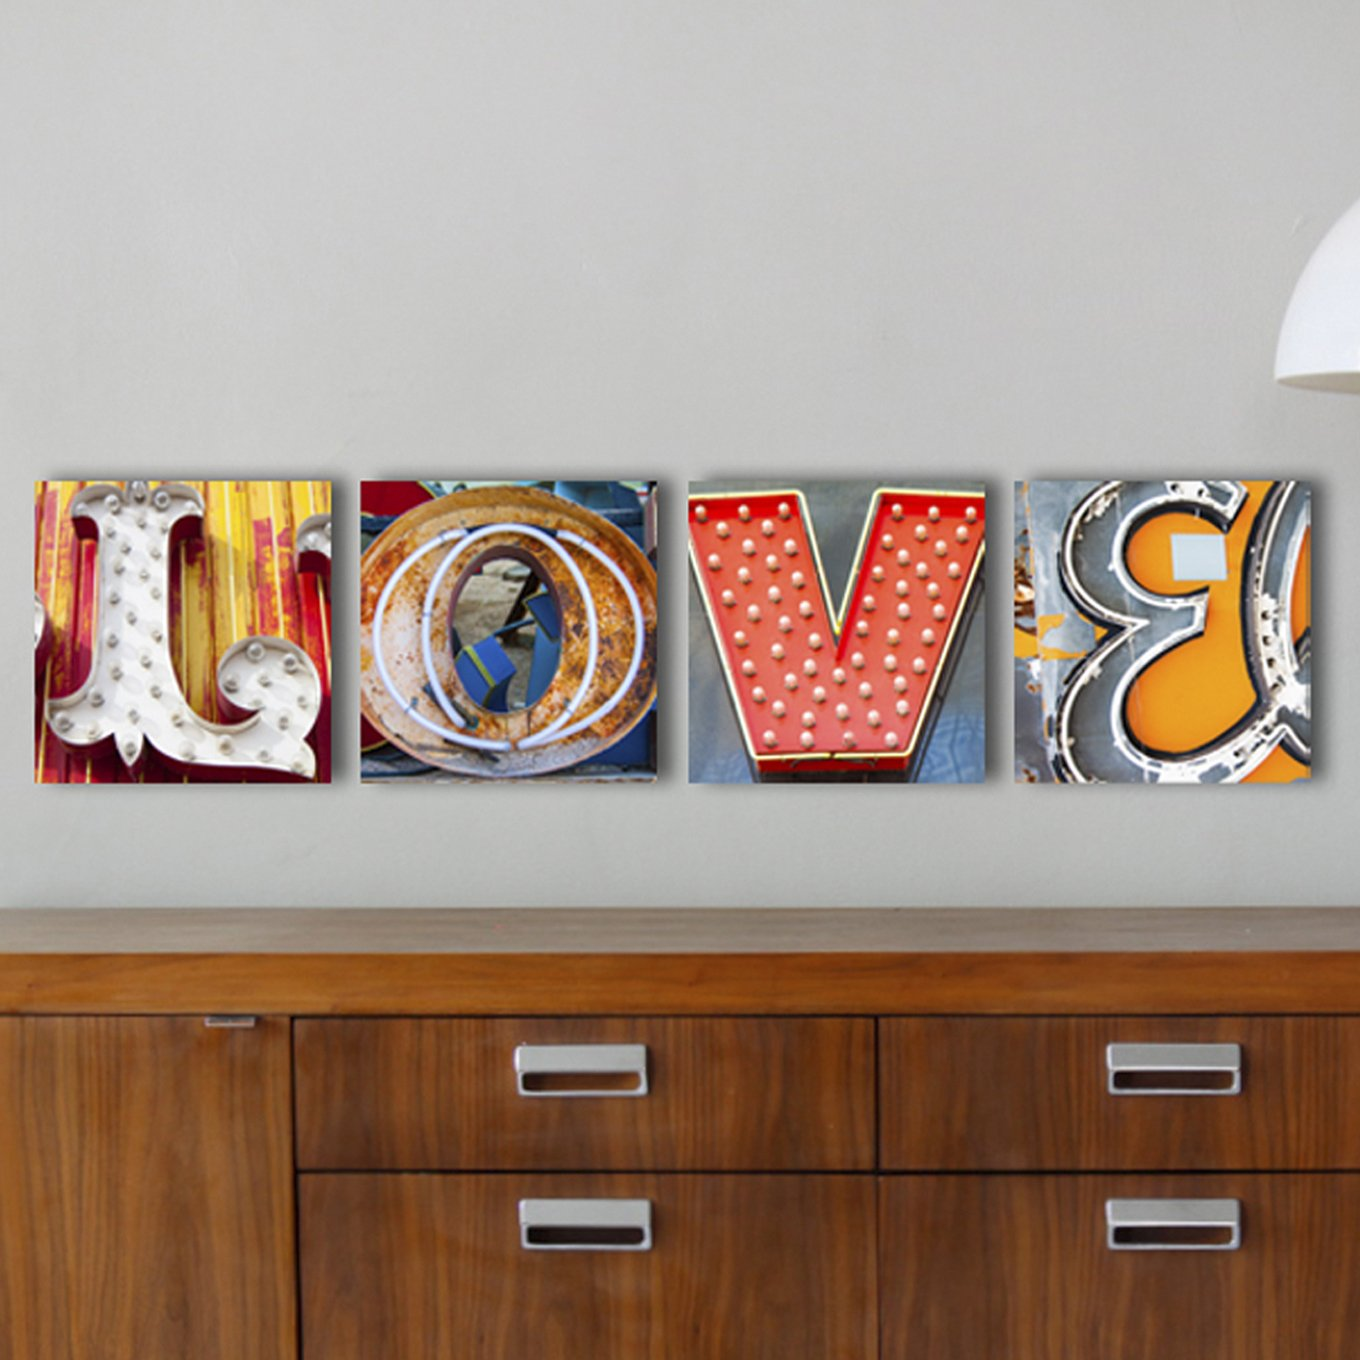 LOVE Sign, Neon Letter Art, Vegas Neon Letter Photos, 20x20 Mounted Prints